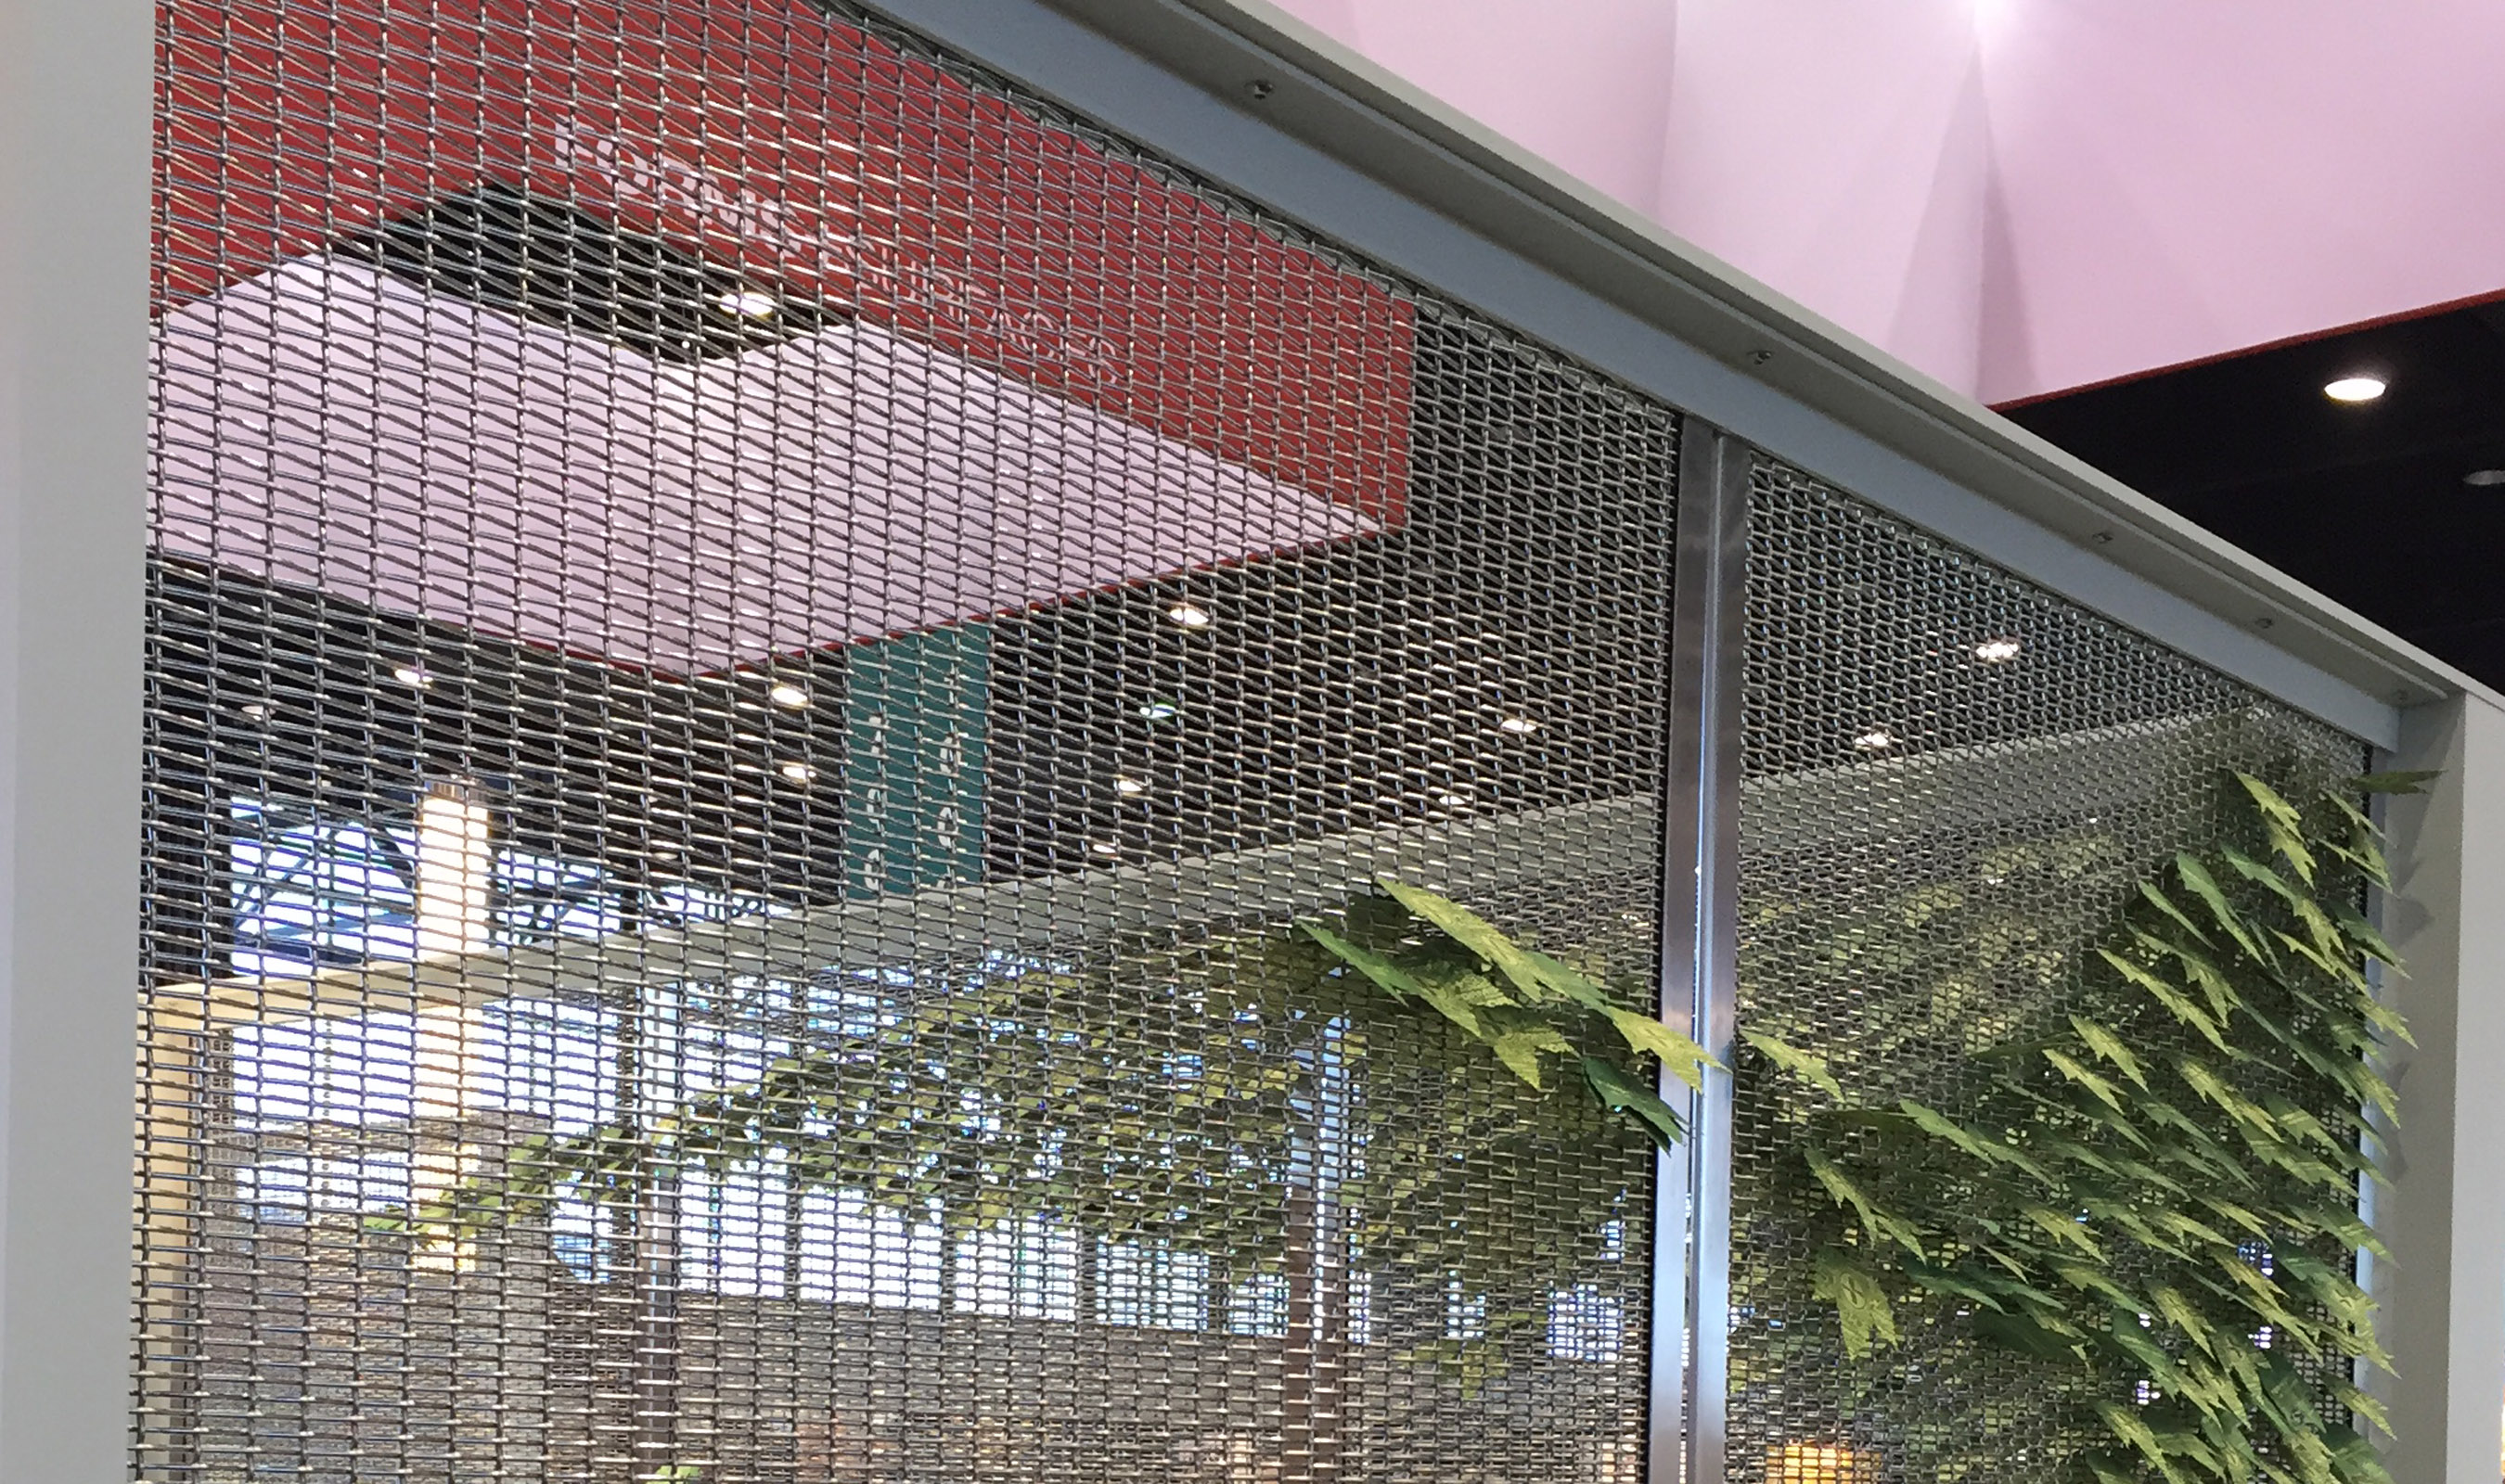 PZ-12 Stainless Steel woven mesh for trade show booth